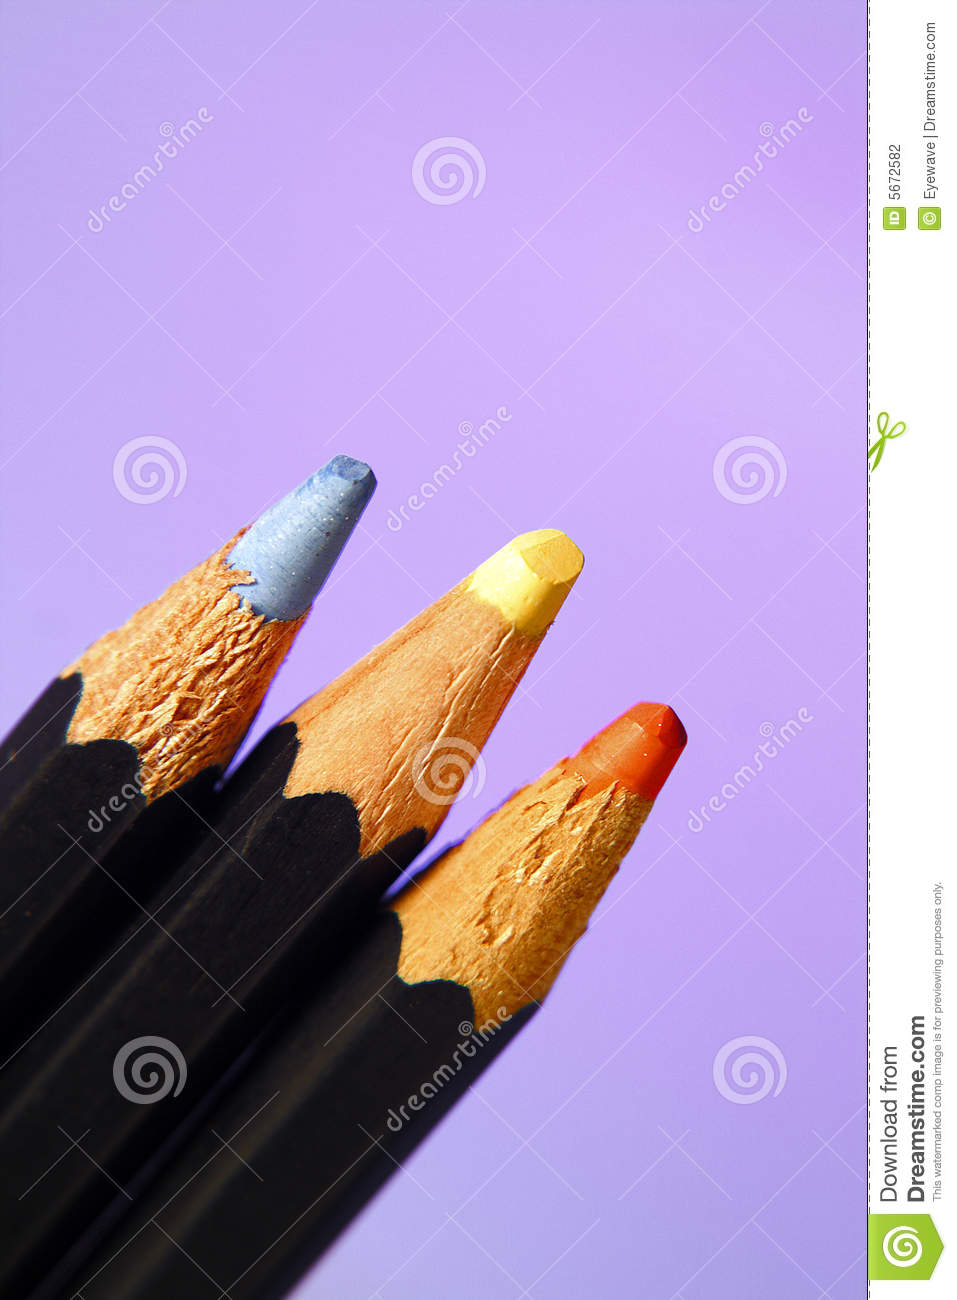 Colored pencils blue yellow or